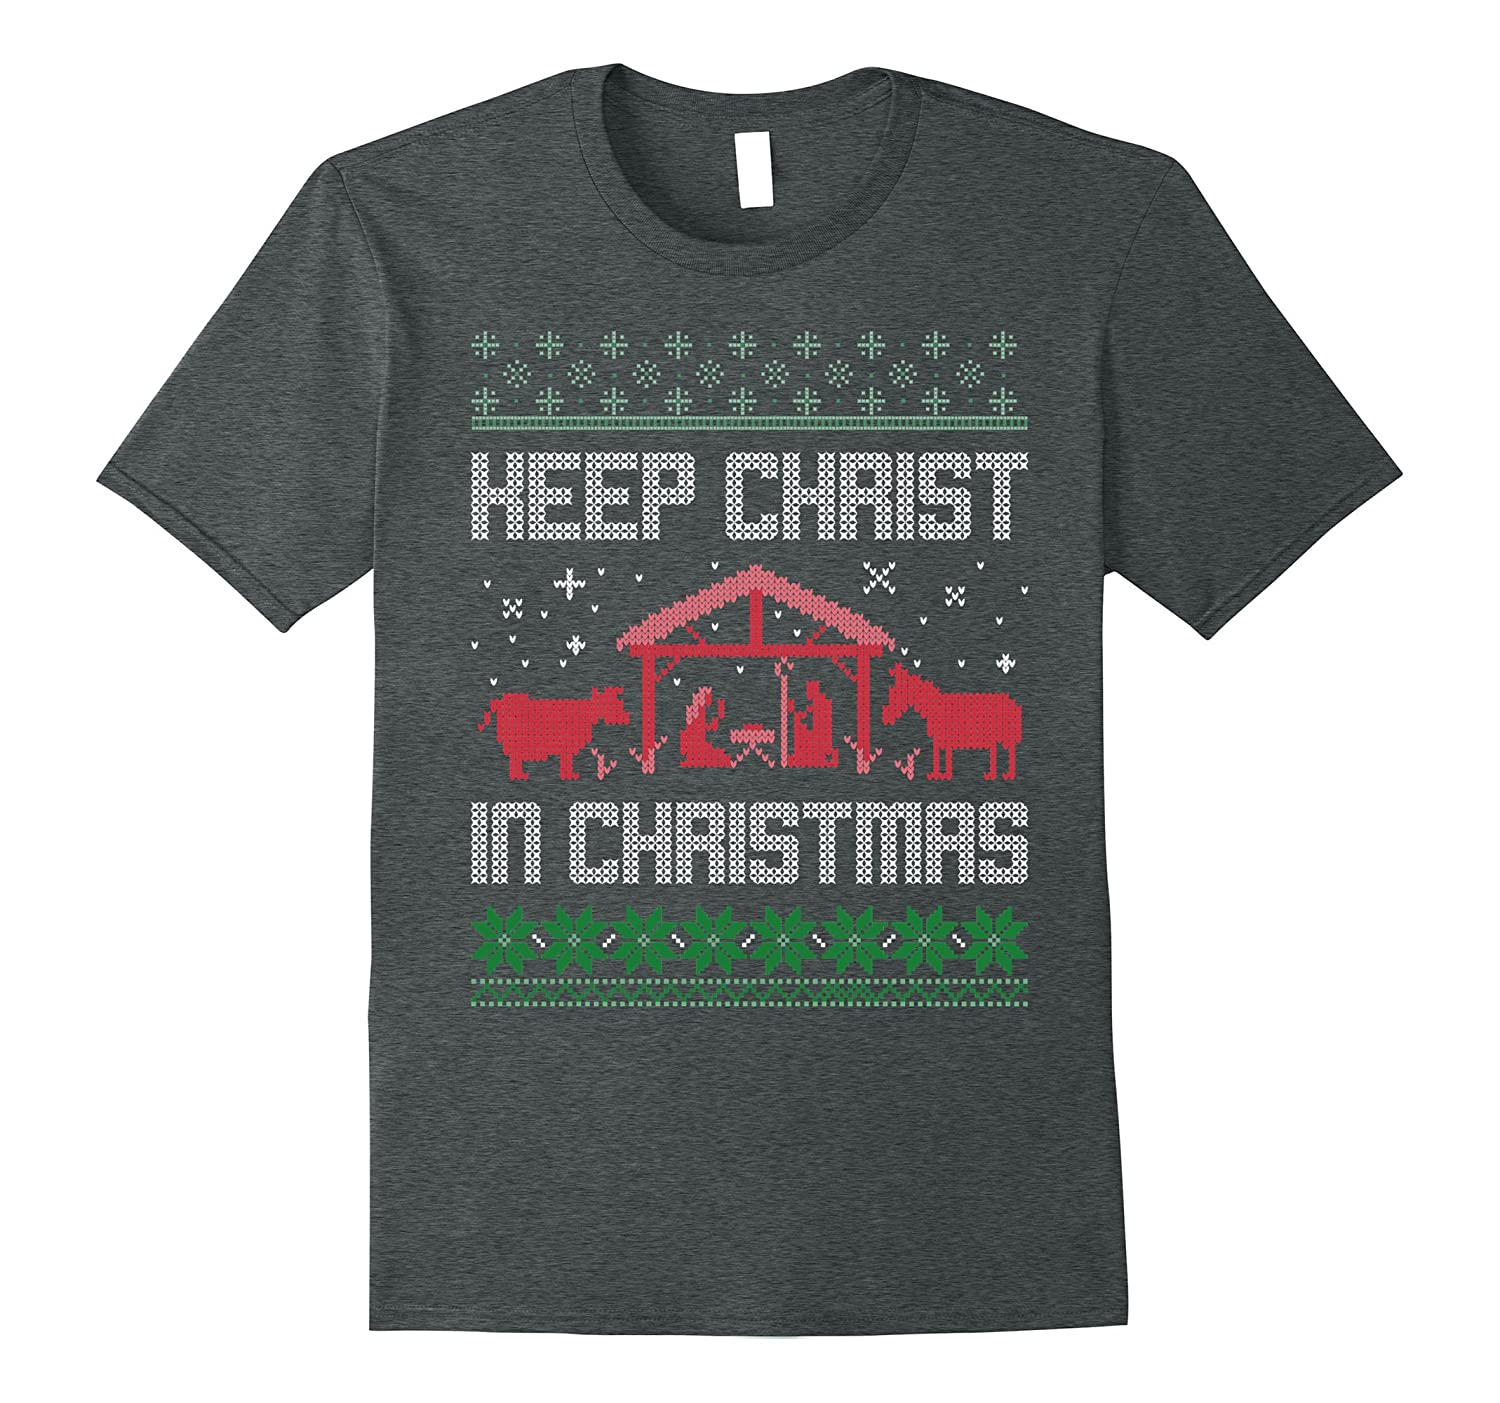 Keep Christ In Christmas T-Shirt in Ugly Sweater Style-ANZ - Anztshirt